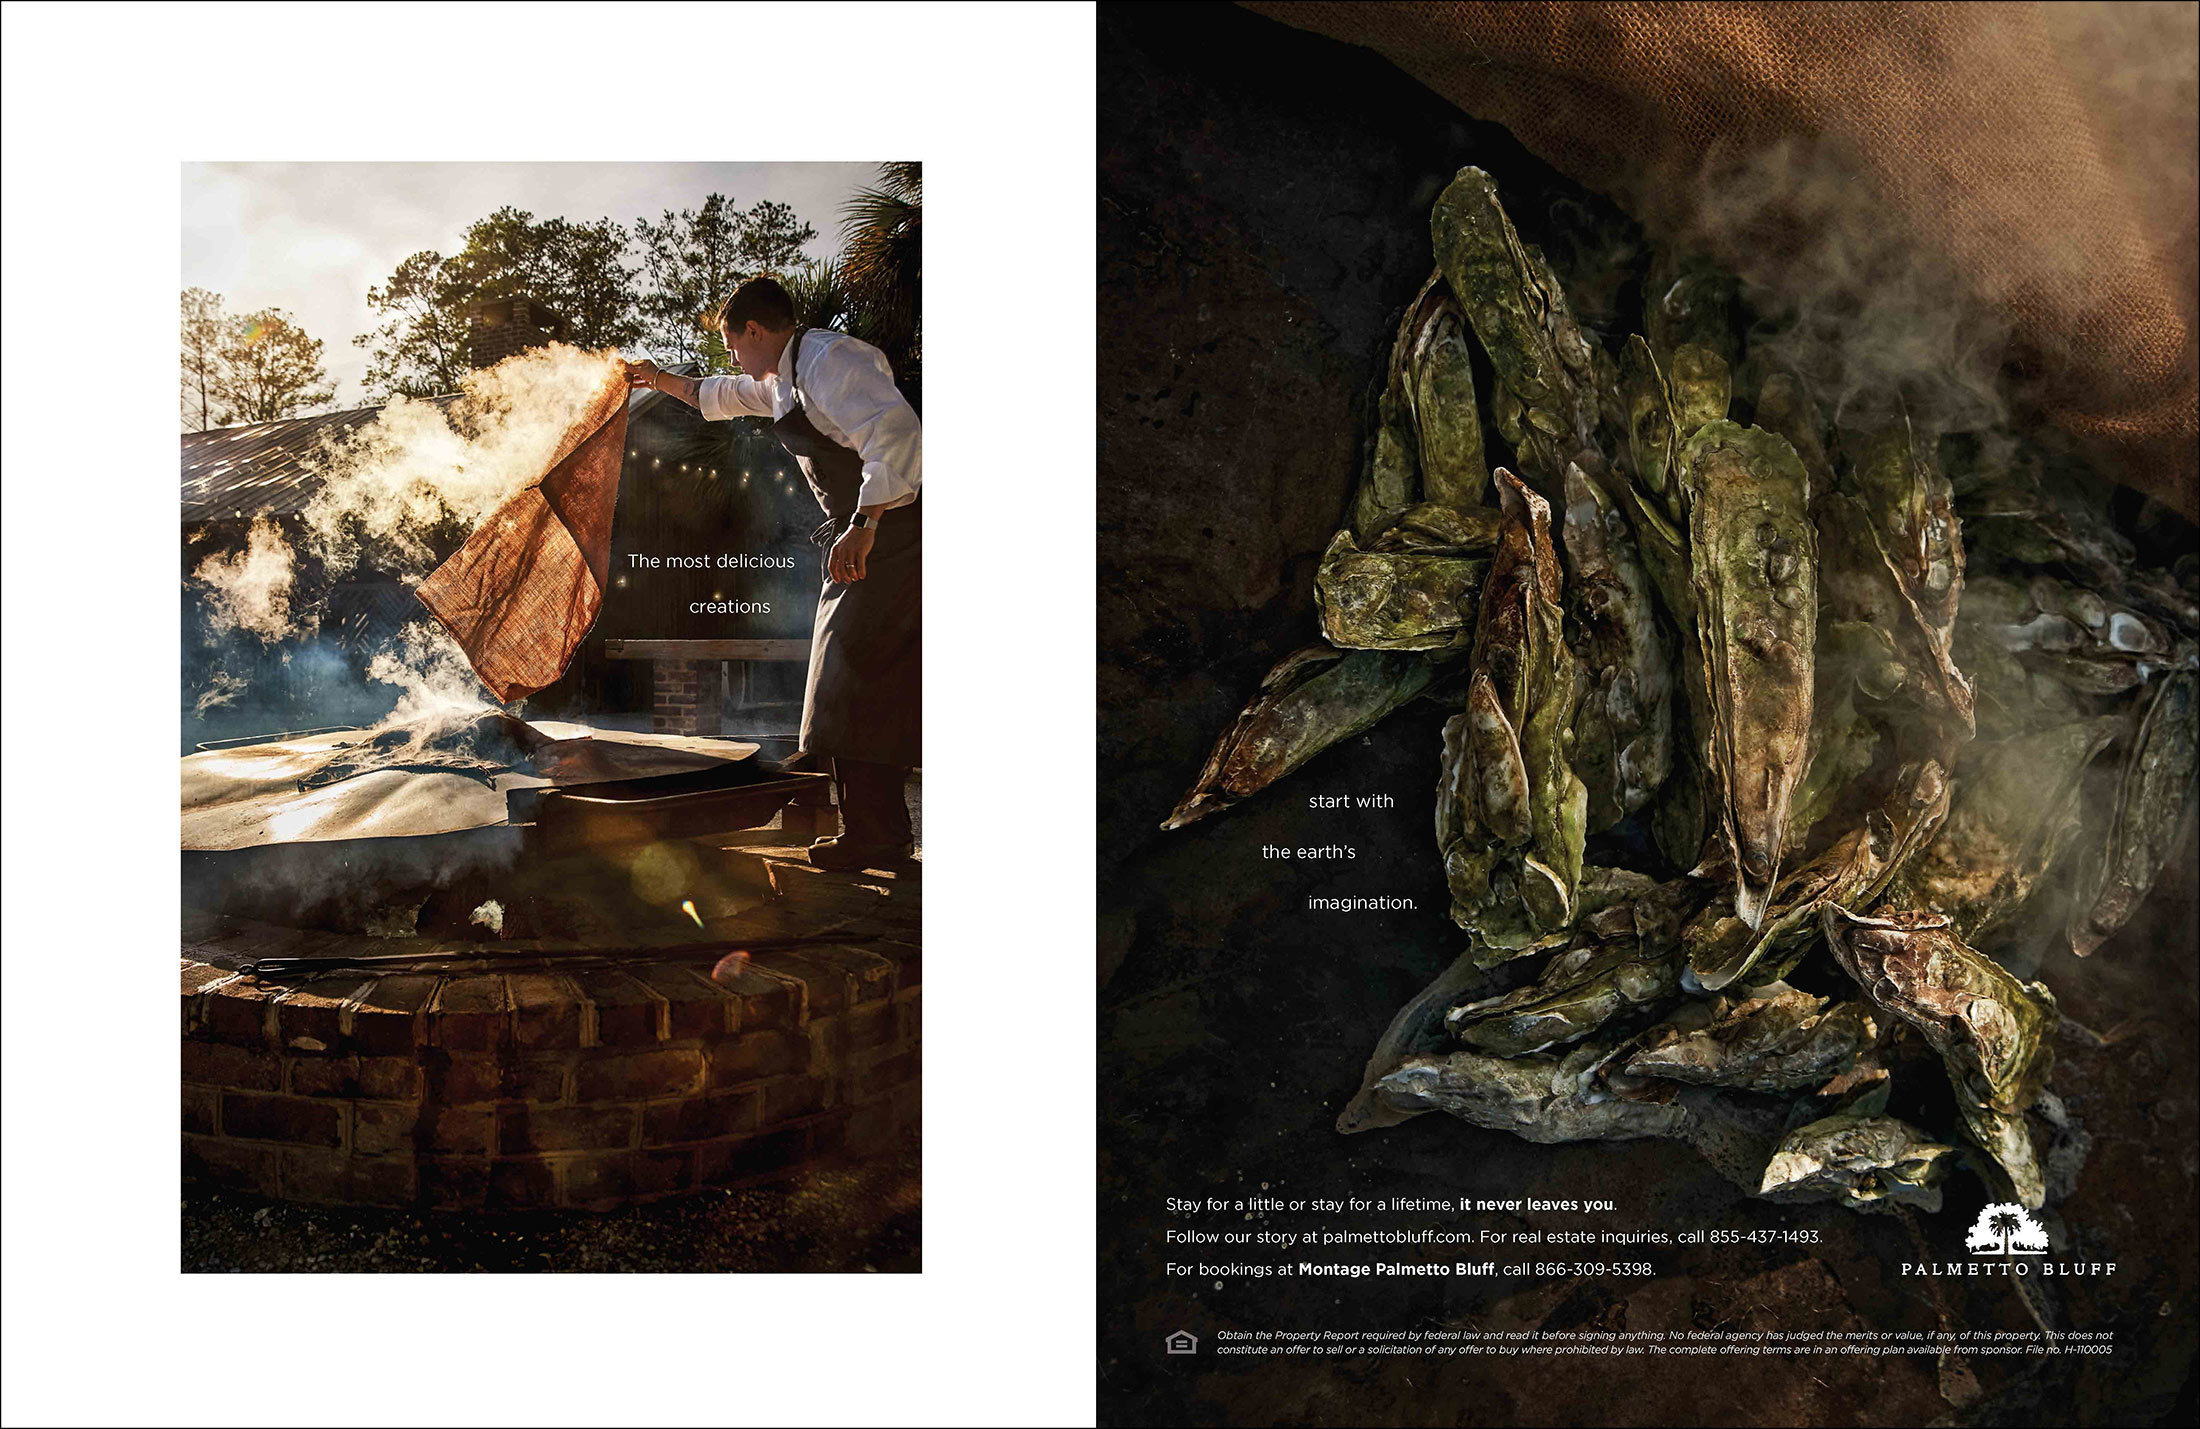 20659 2 Palmetto Bluff Oyster Chef Nate Outdoor Oysters Spread 8 375x10 8125 Afar